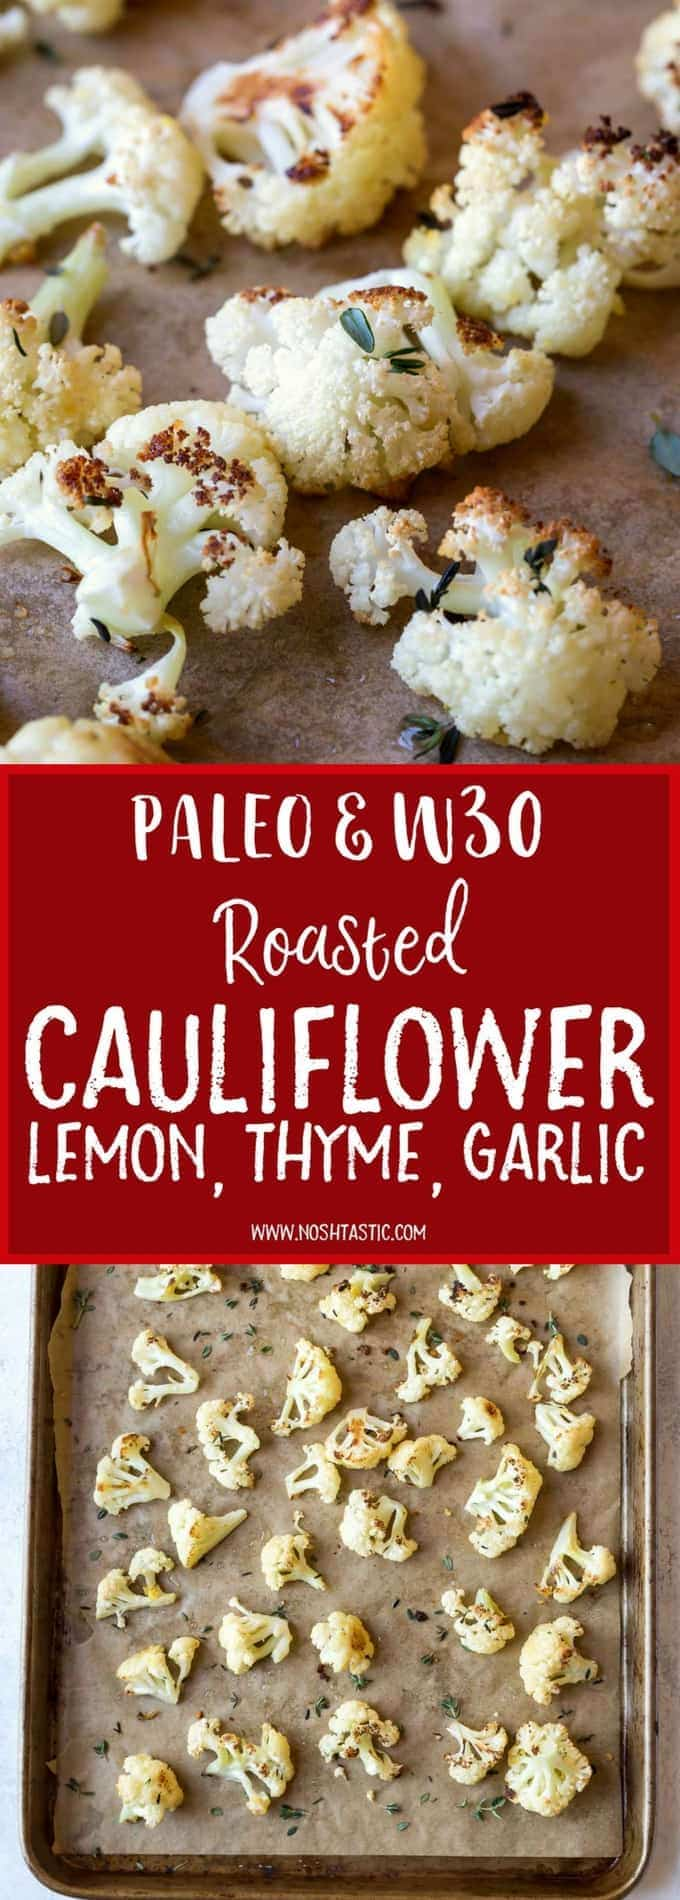 Paleo Roasted Cauliflower with Lemon,Thyme, and Garlic, make it easily in the oven! This recipe is also Whole30, vegan and low carb.